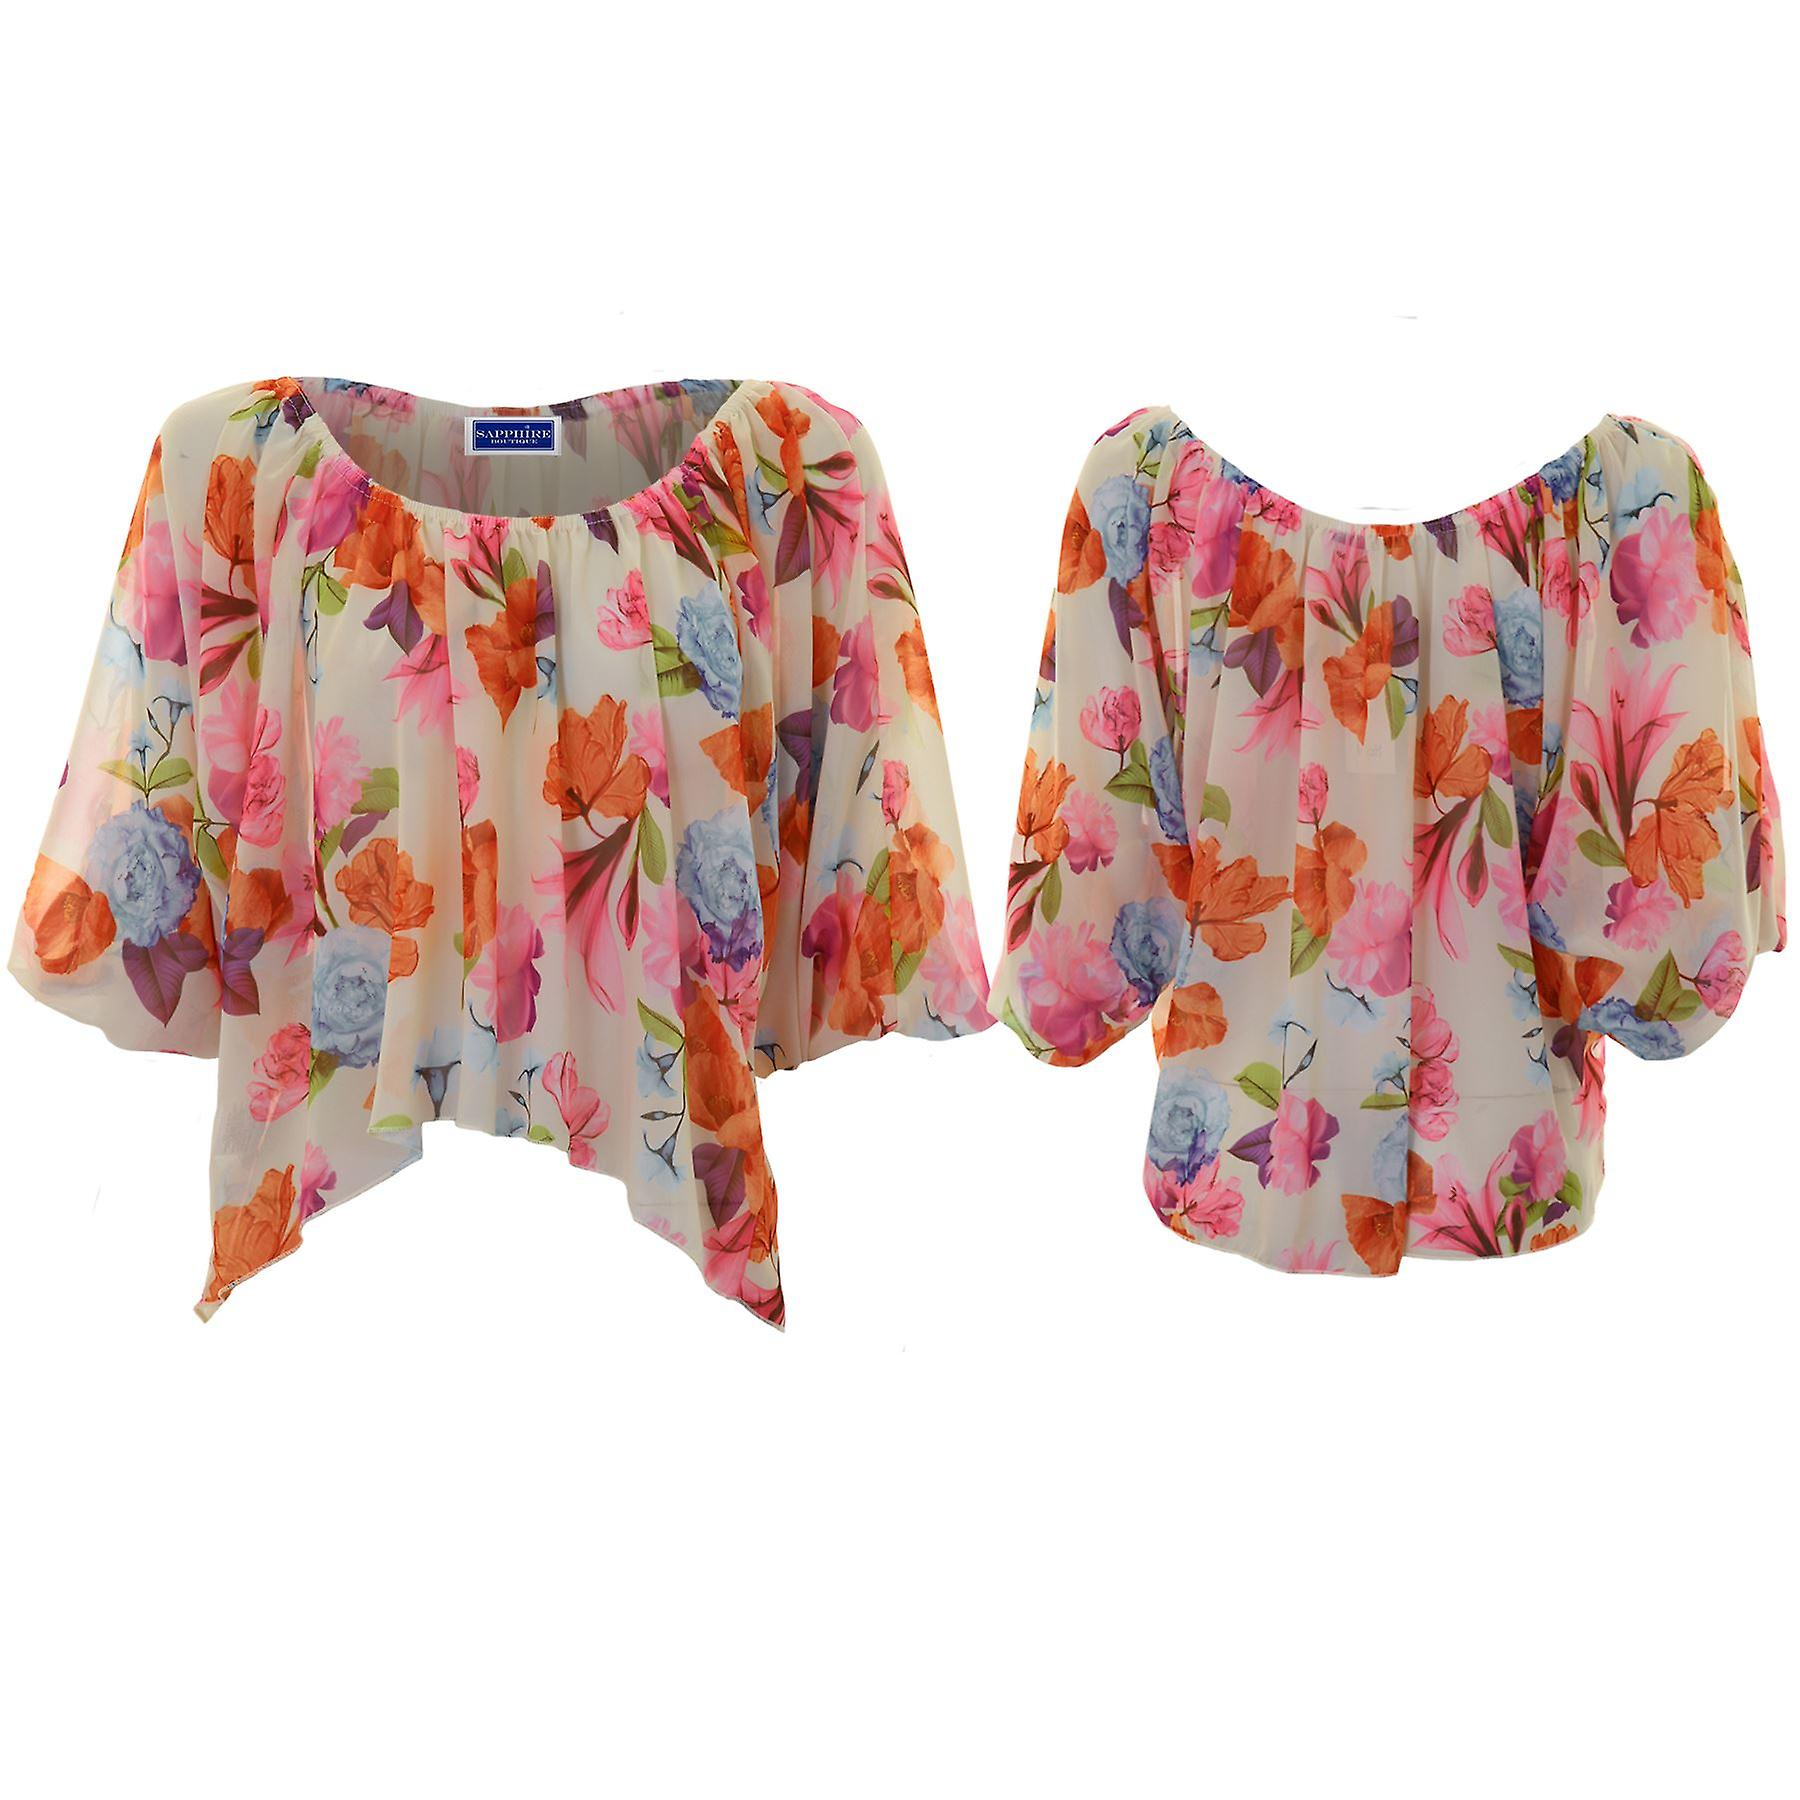 Ladies Floral High Low Chiffon Semi Sheer Waterfall Crop Top Batwing Blouse